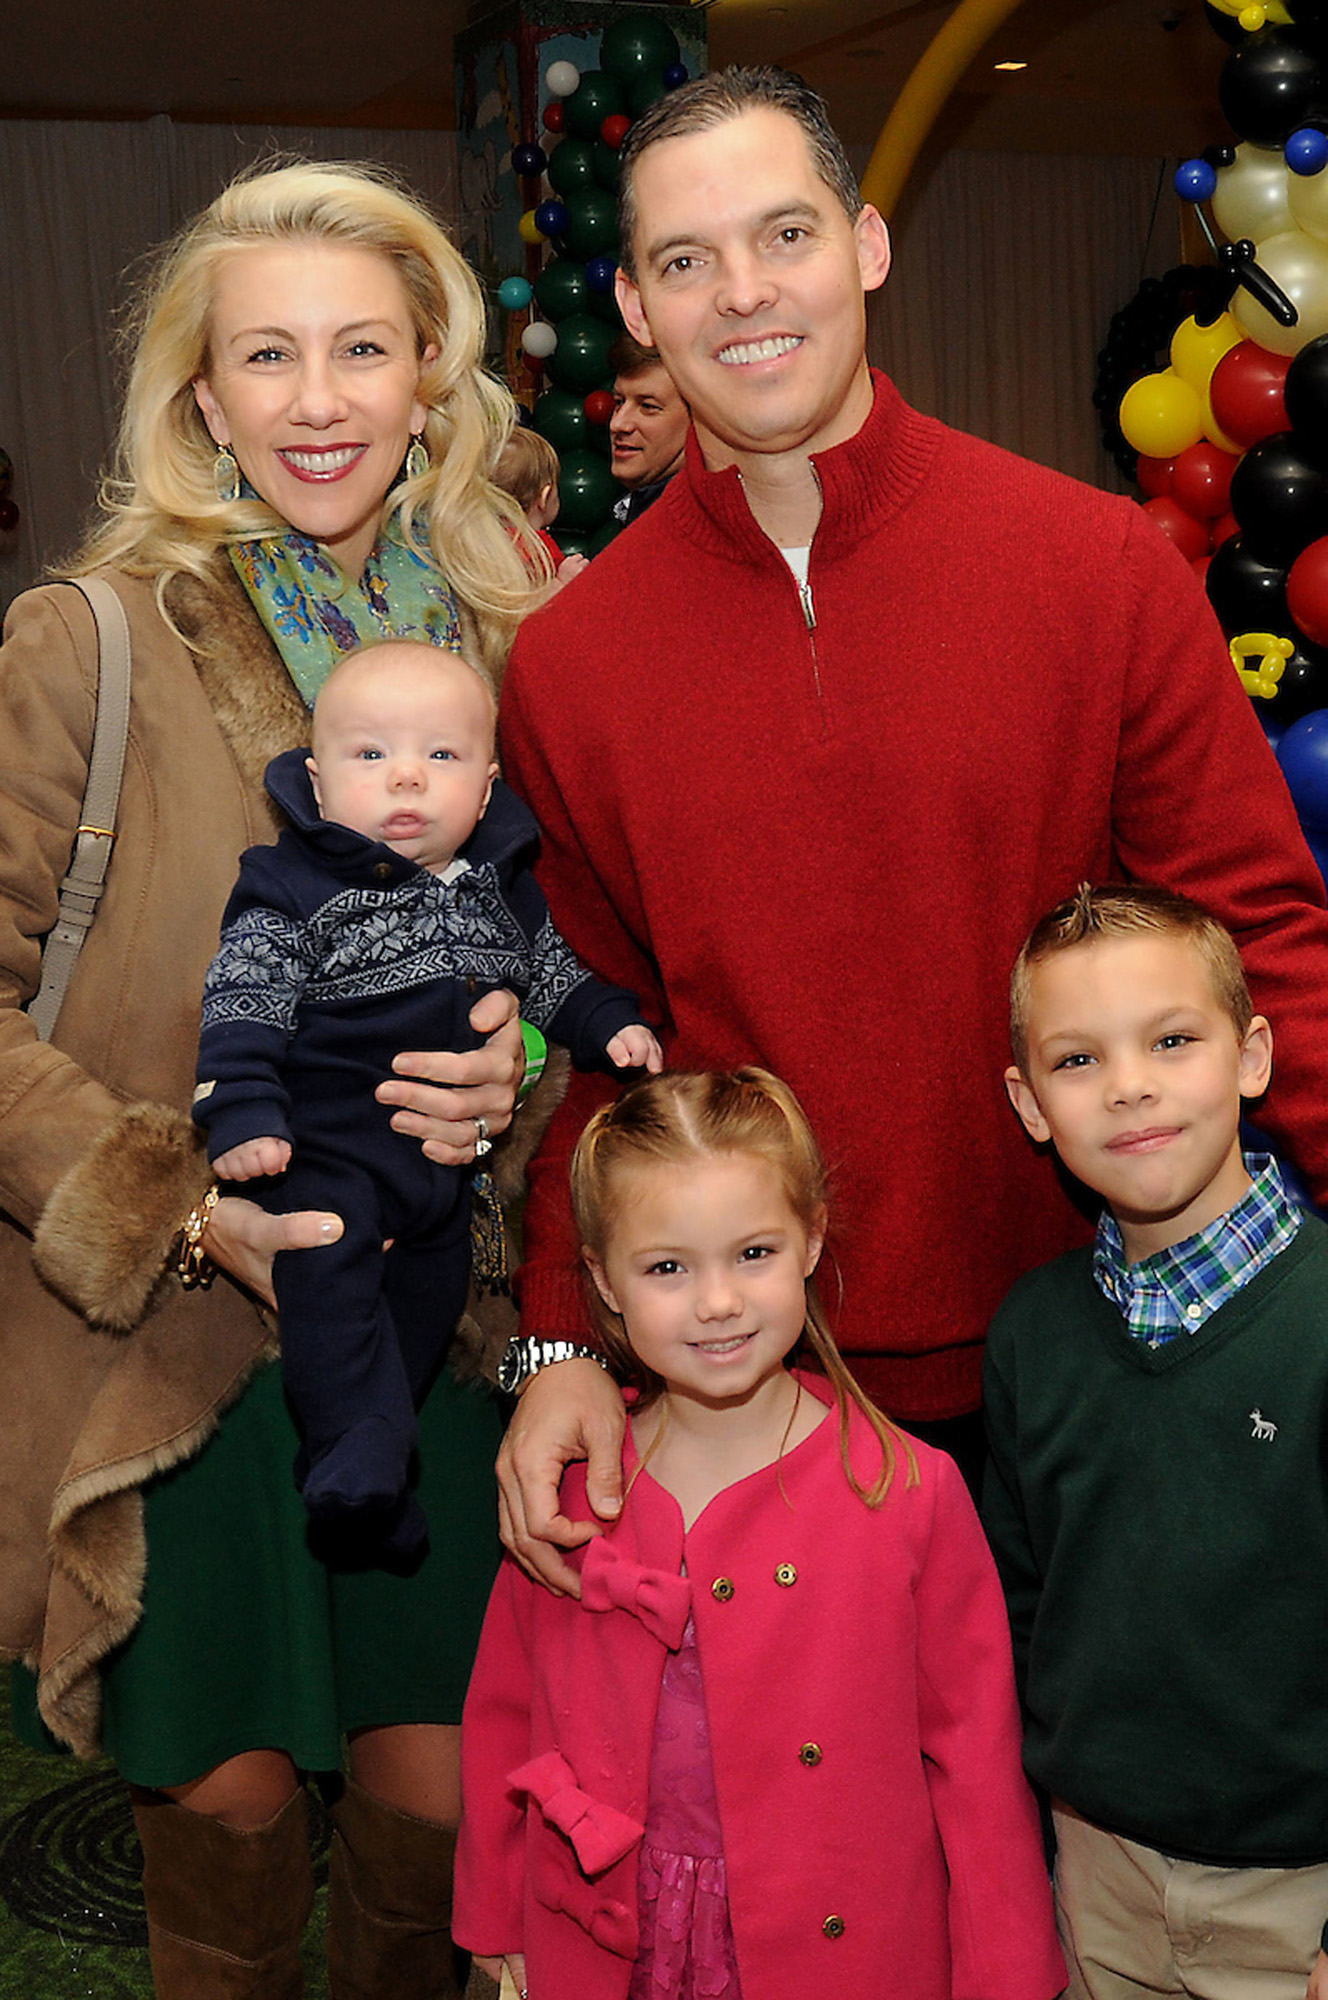 Cathy and David Herr with their children Hudson, Lauren, and Declan